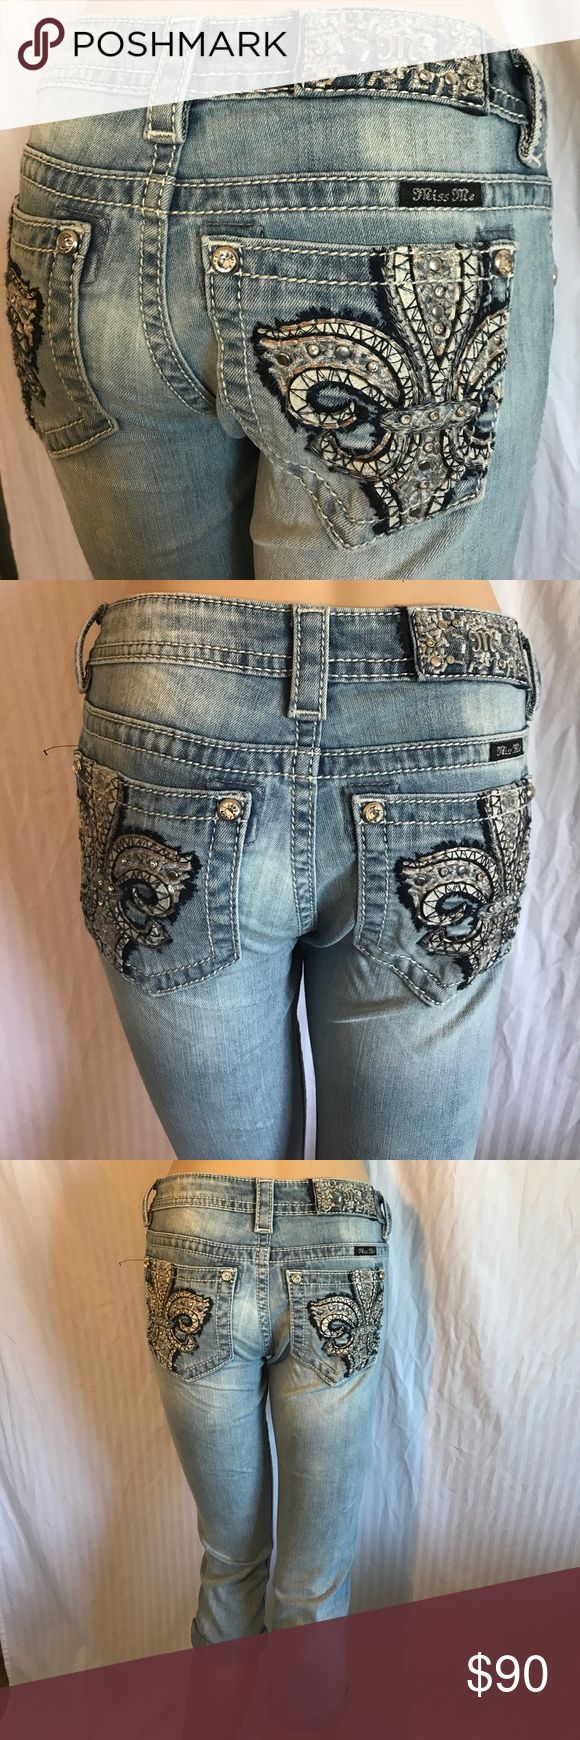 NWT Miss Me Rhinestone Signature Capri Cuffed New with tag. Style # JP7658P. Color LT BLU. Miss Me Signature Capri Cuffed Jeans. 93% cotton 6% polyester 1% elastane. Size 30. Waist laying flat 17'. Rise 8'. Inseam 23'. Size 28. Waist laying flat 16'. Rise 8'. Inseam 23'. Size 25. Waist laying flat 14'. Rise 7'. Inseam 23'. I do bundles also give me your best offer please check some of my items you might find what you are looking for in good quality and very affordable price Miss Me Jeans…